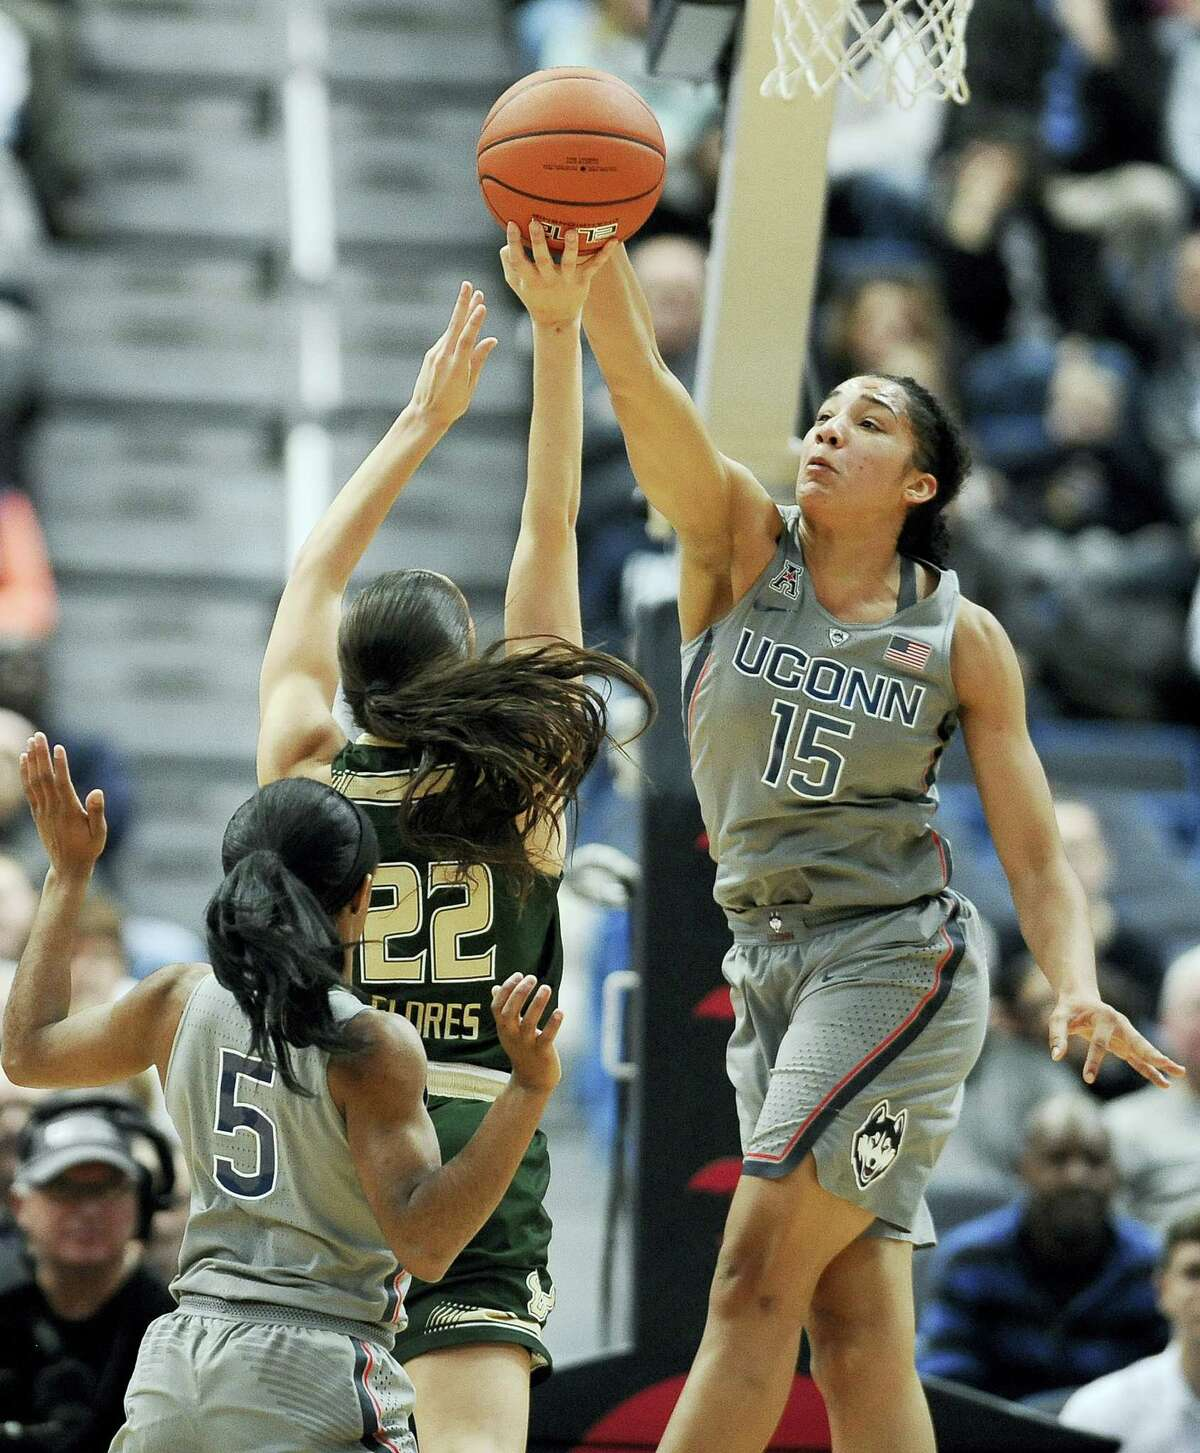 UConn's Gabby Williams blocks a shot attempt by South Florida's Laia Flores during a game earlier this season.